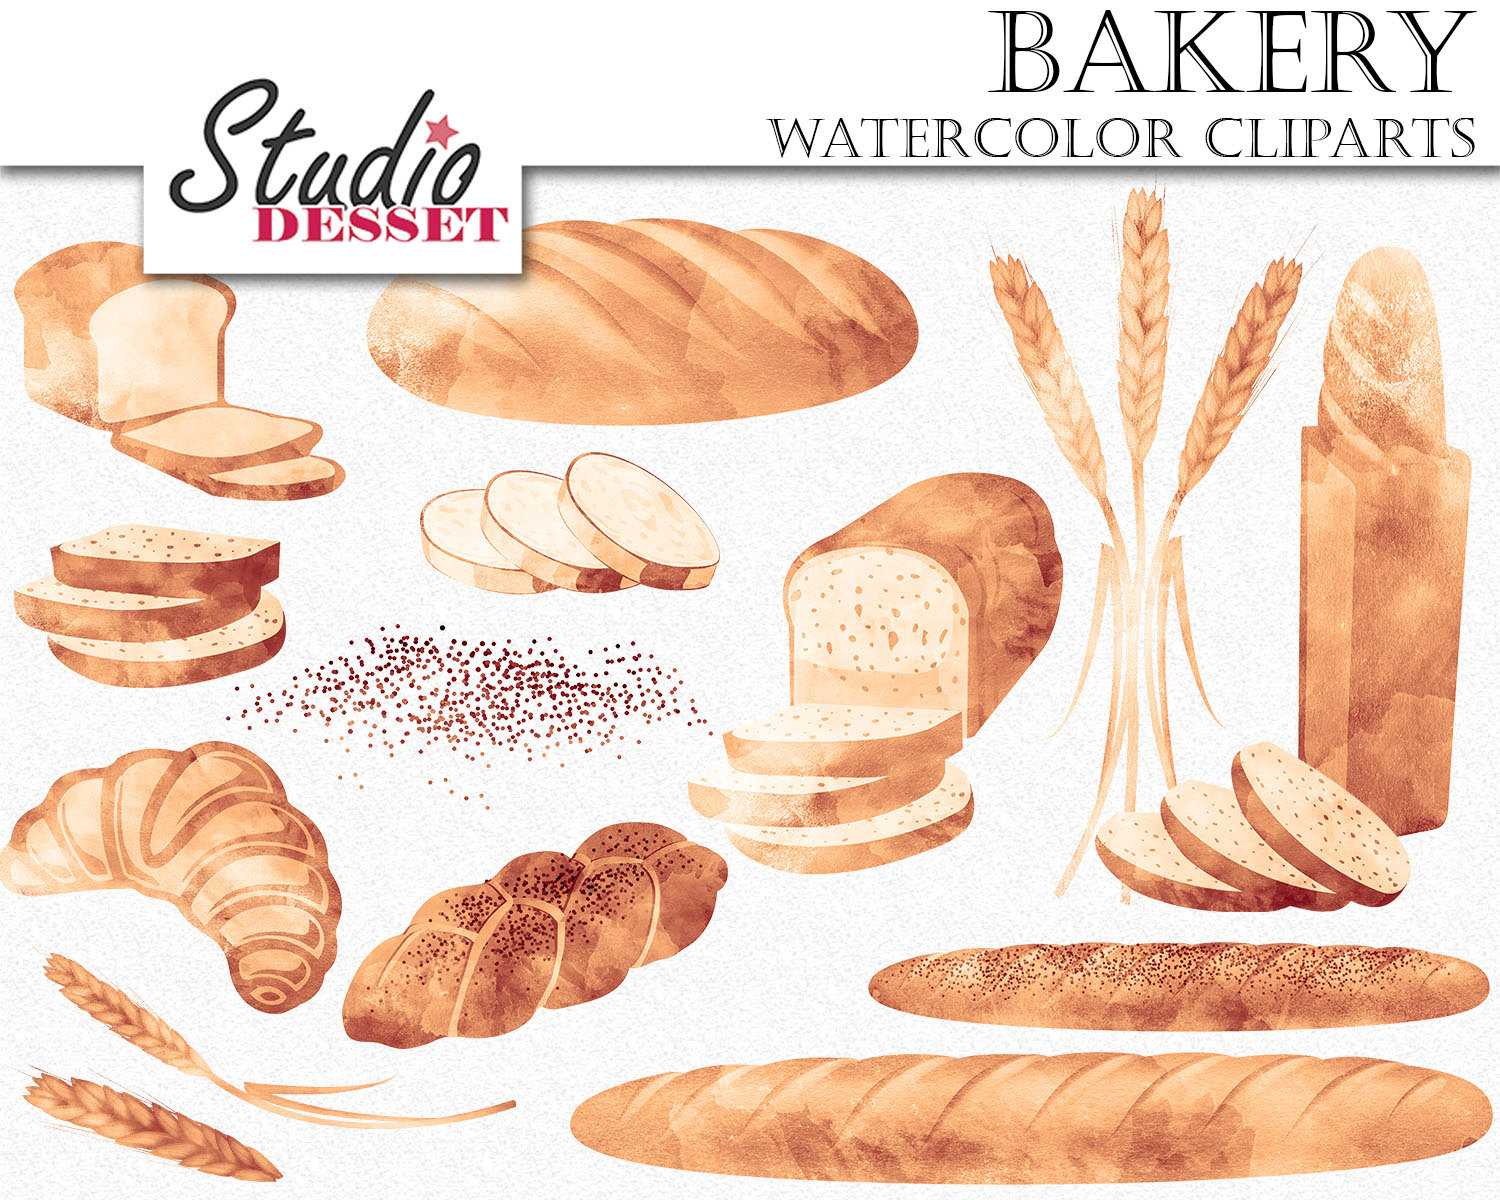 Cliparts watercolor bakery graphics. Bread clipart baked goods